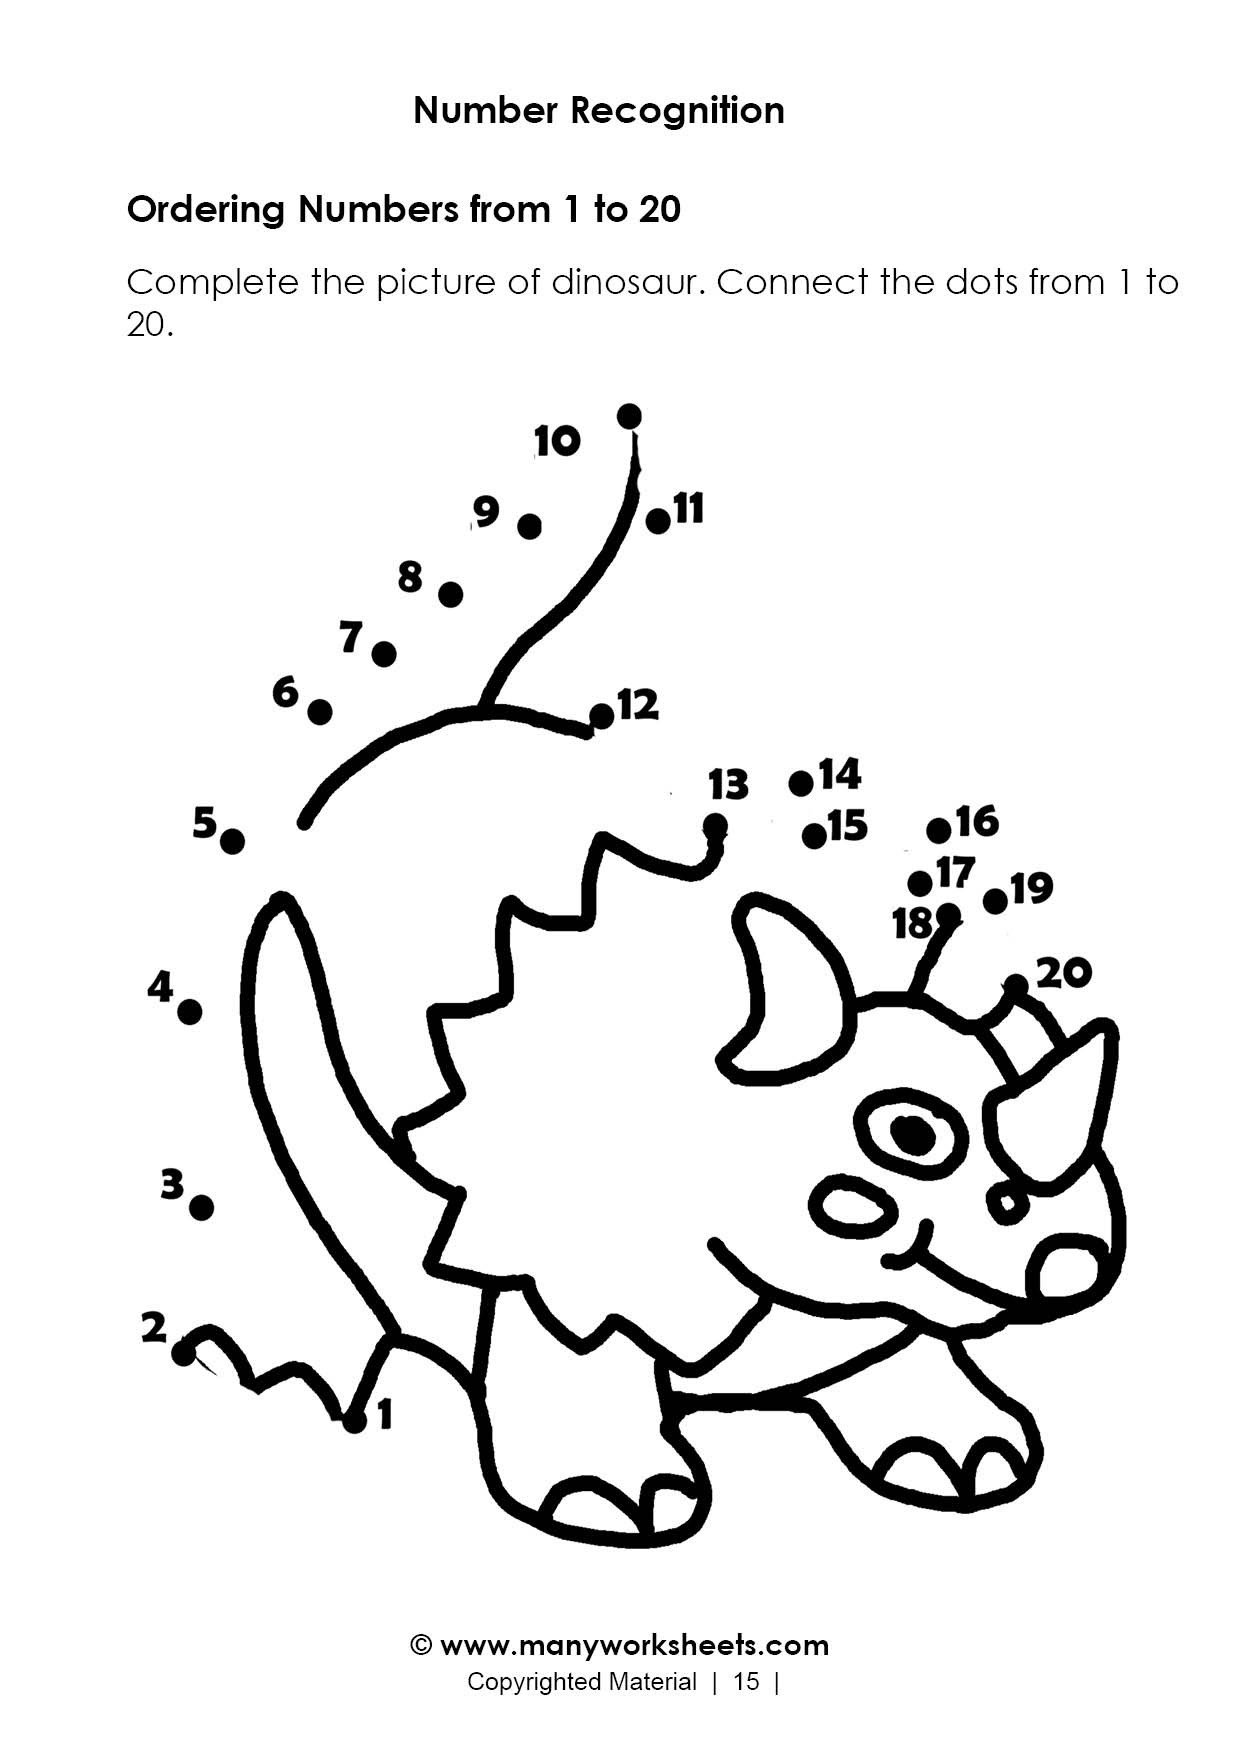 Connect the Dots Math Worksheets Worksheets Numbers Recognition Worksheet Worksheets Number